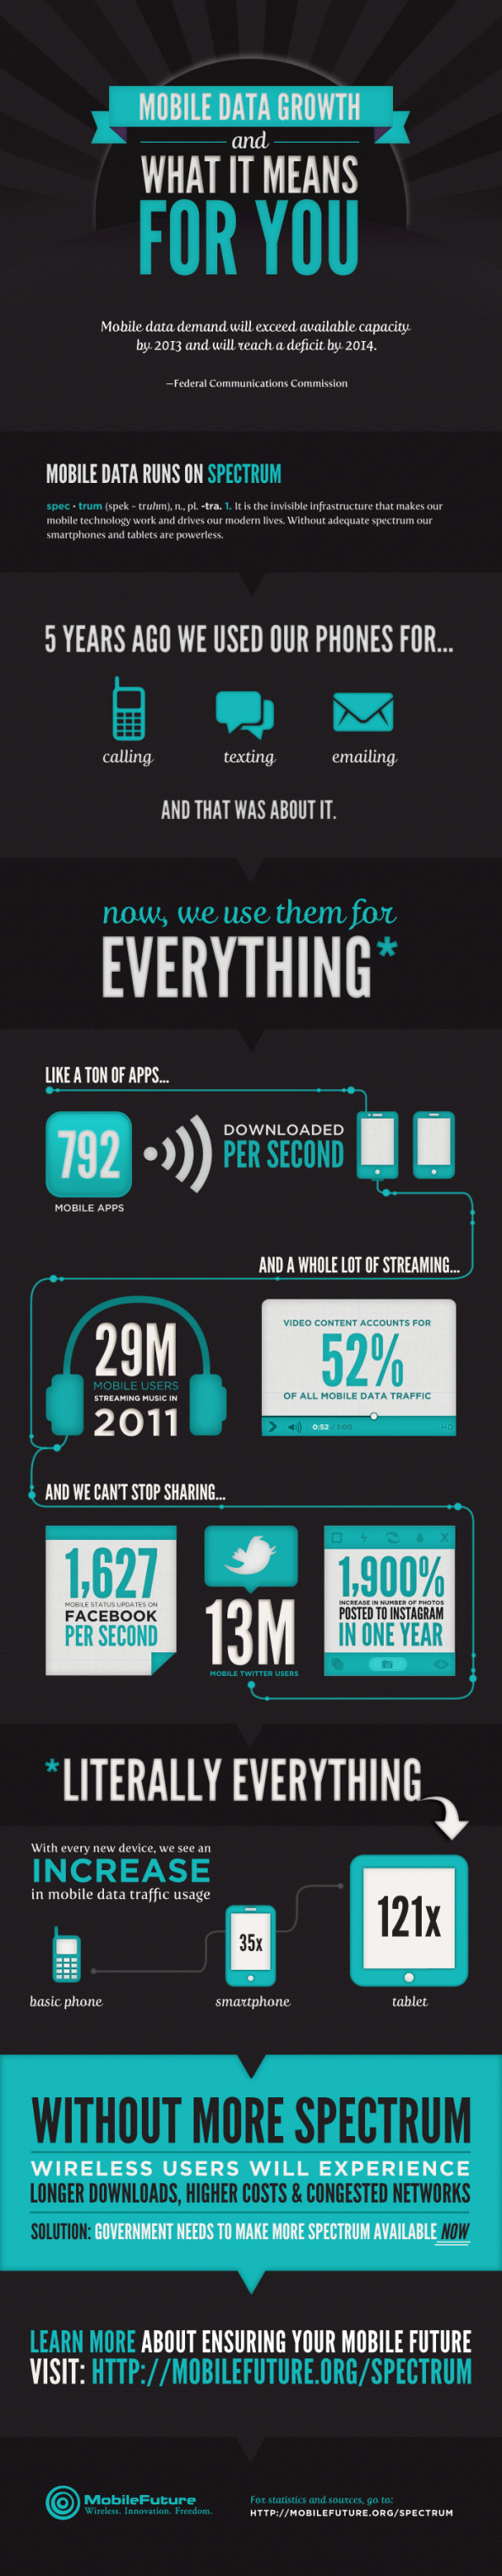 Mobile Data Growth and What it Means for You Infographic